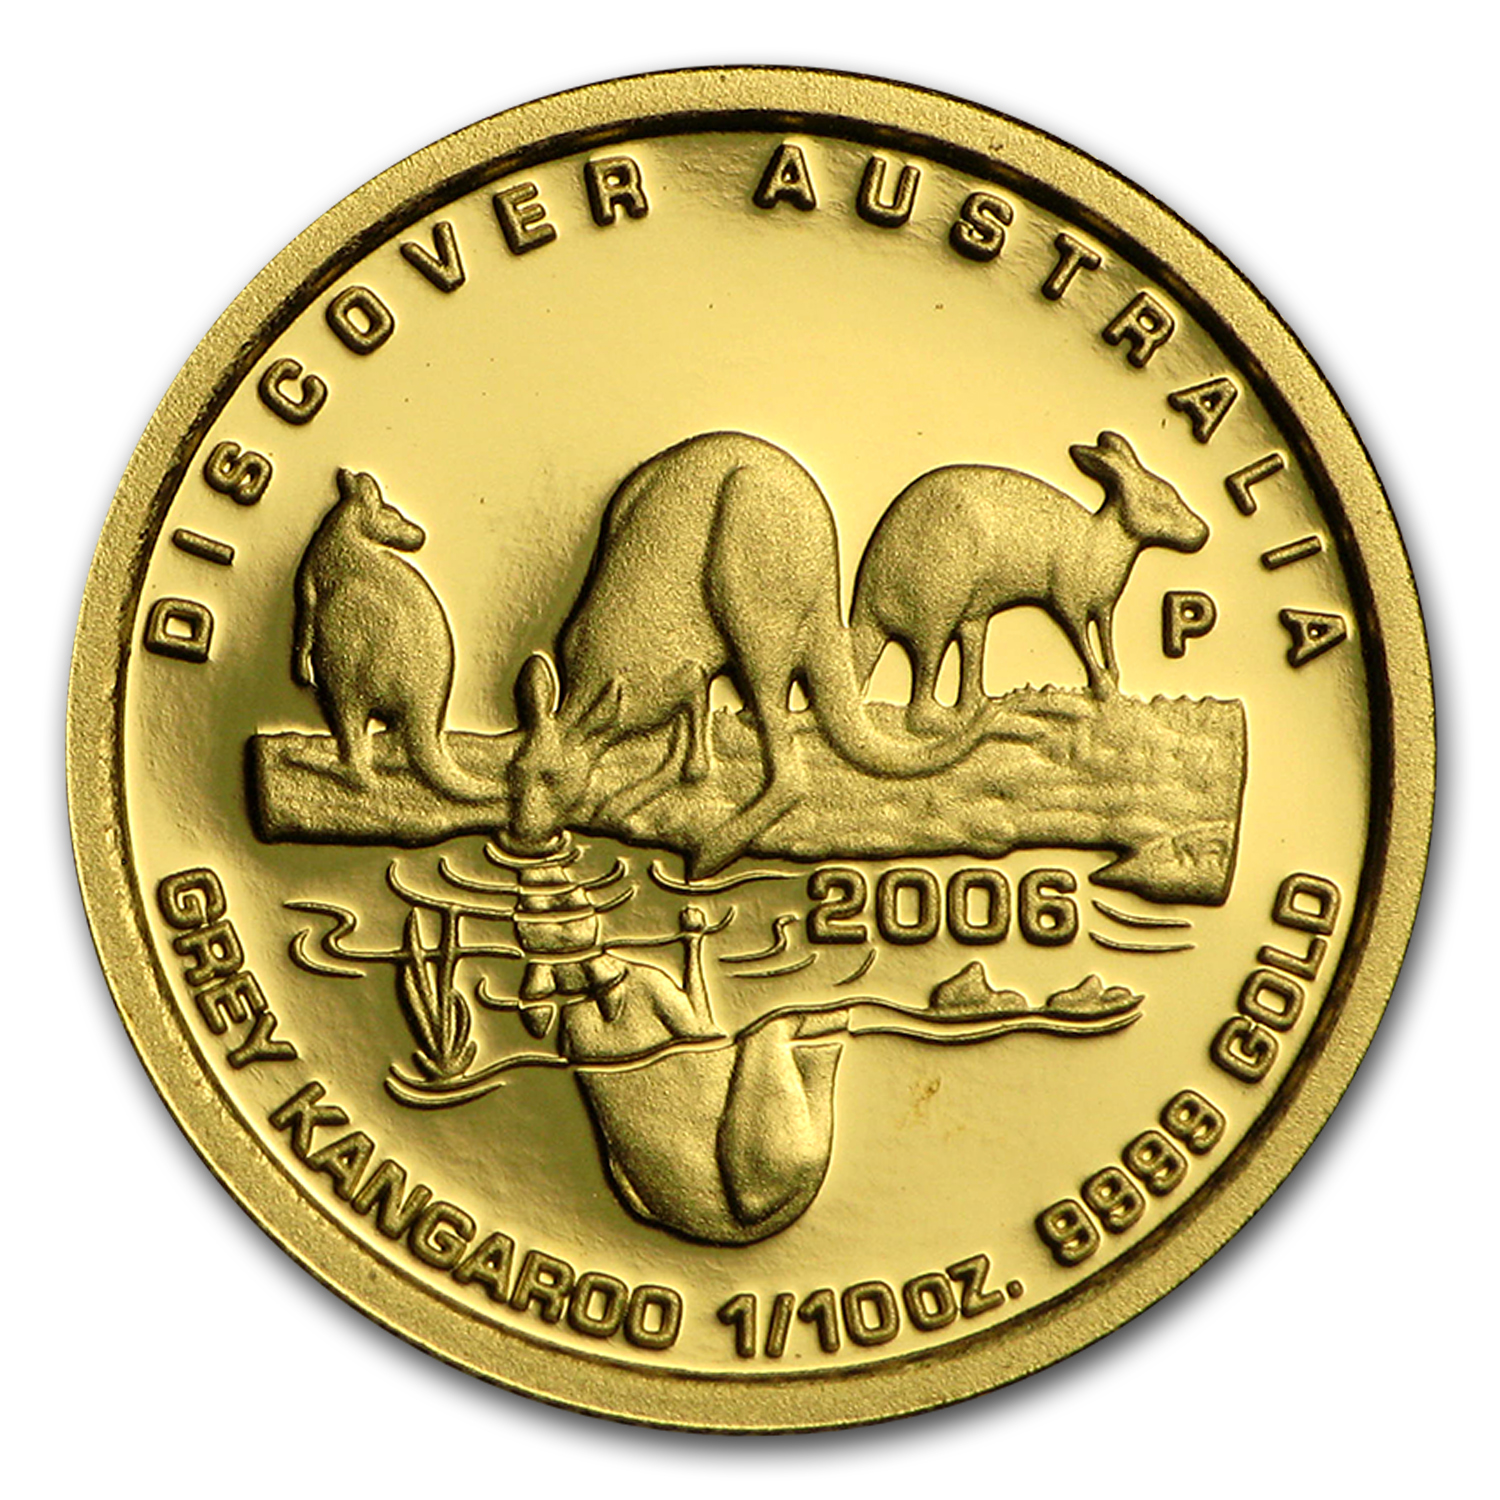 2006 1/10 oz Gold Kangaroo Discover Australia Proof